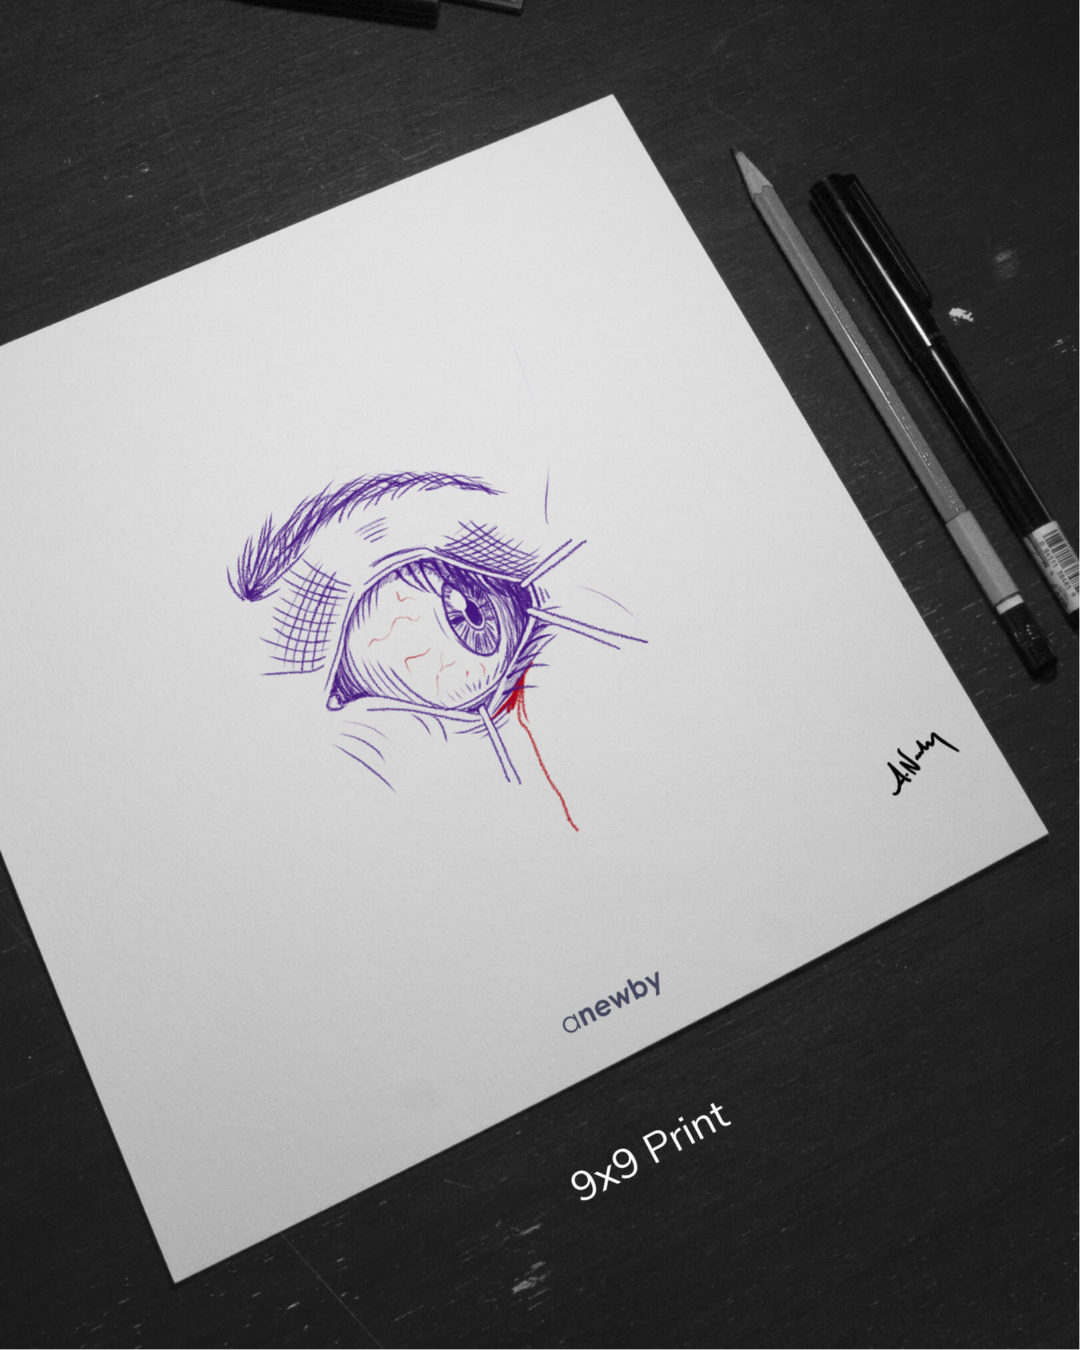 'Purple Eyeball' 9x9 Print